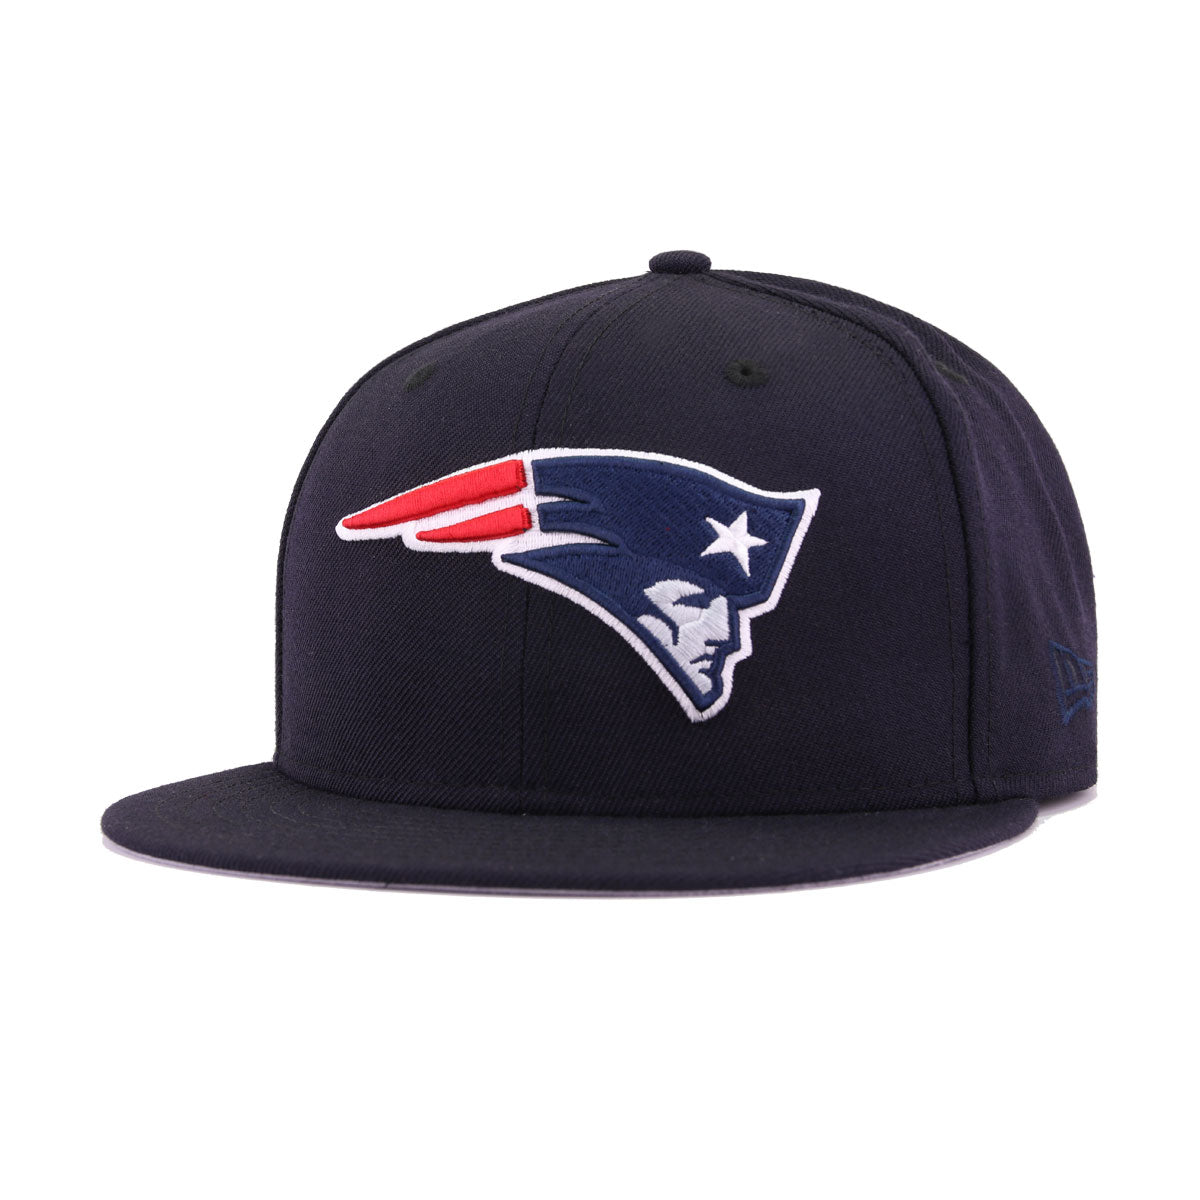 New England Patriots Navy Oceanside Blue Scarlet New Era 9Fifty Snapback